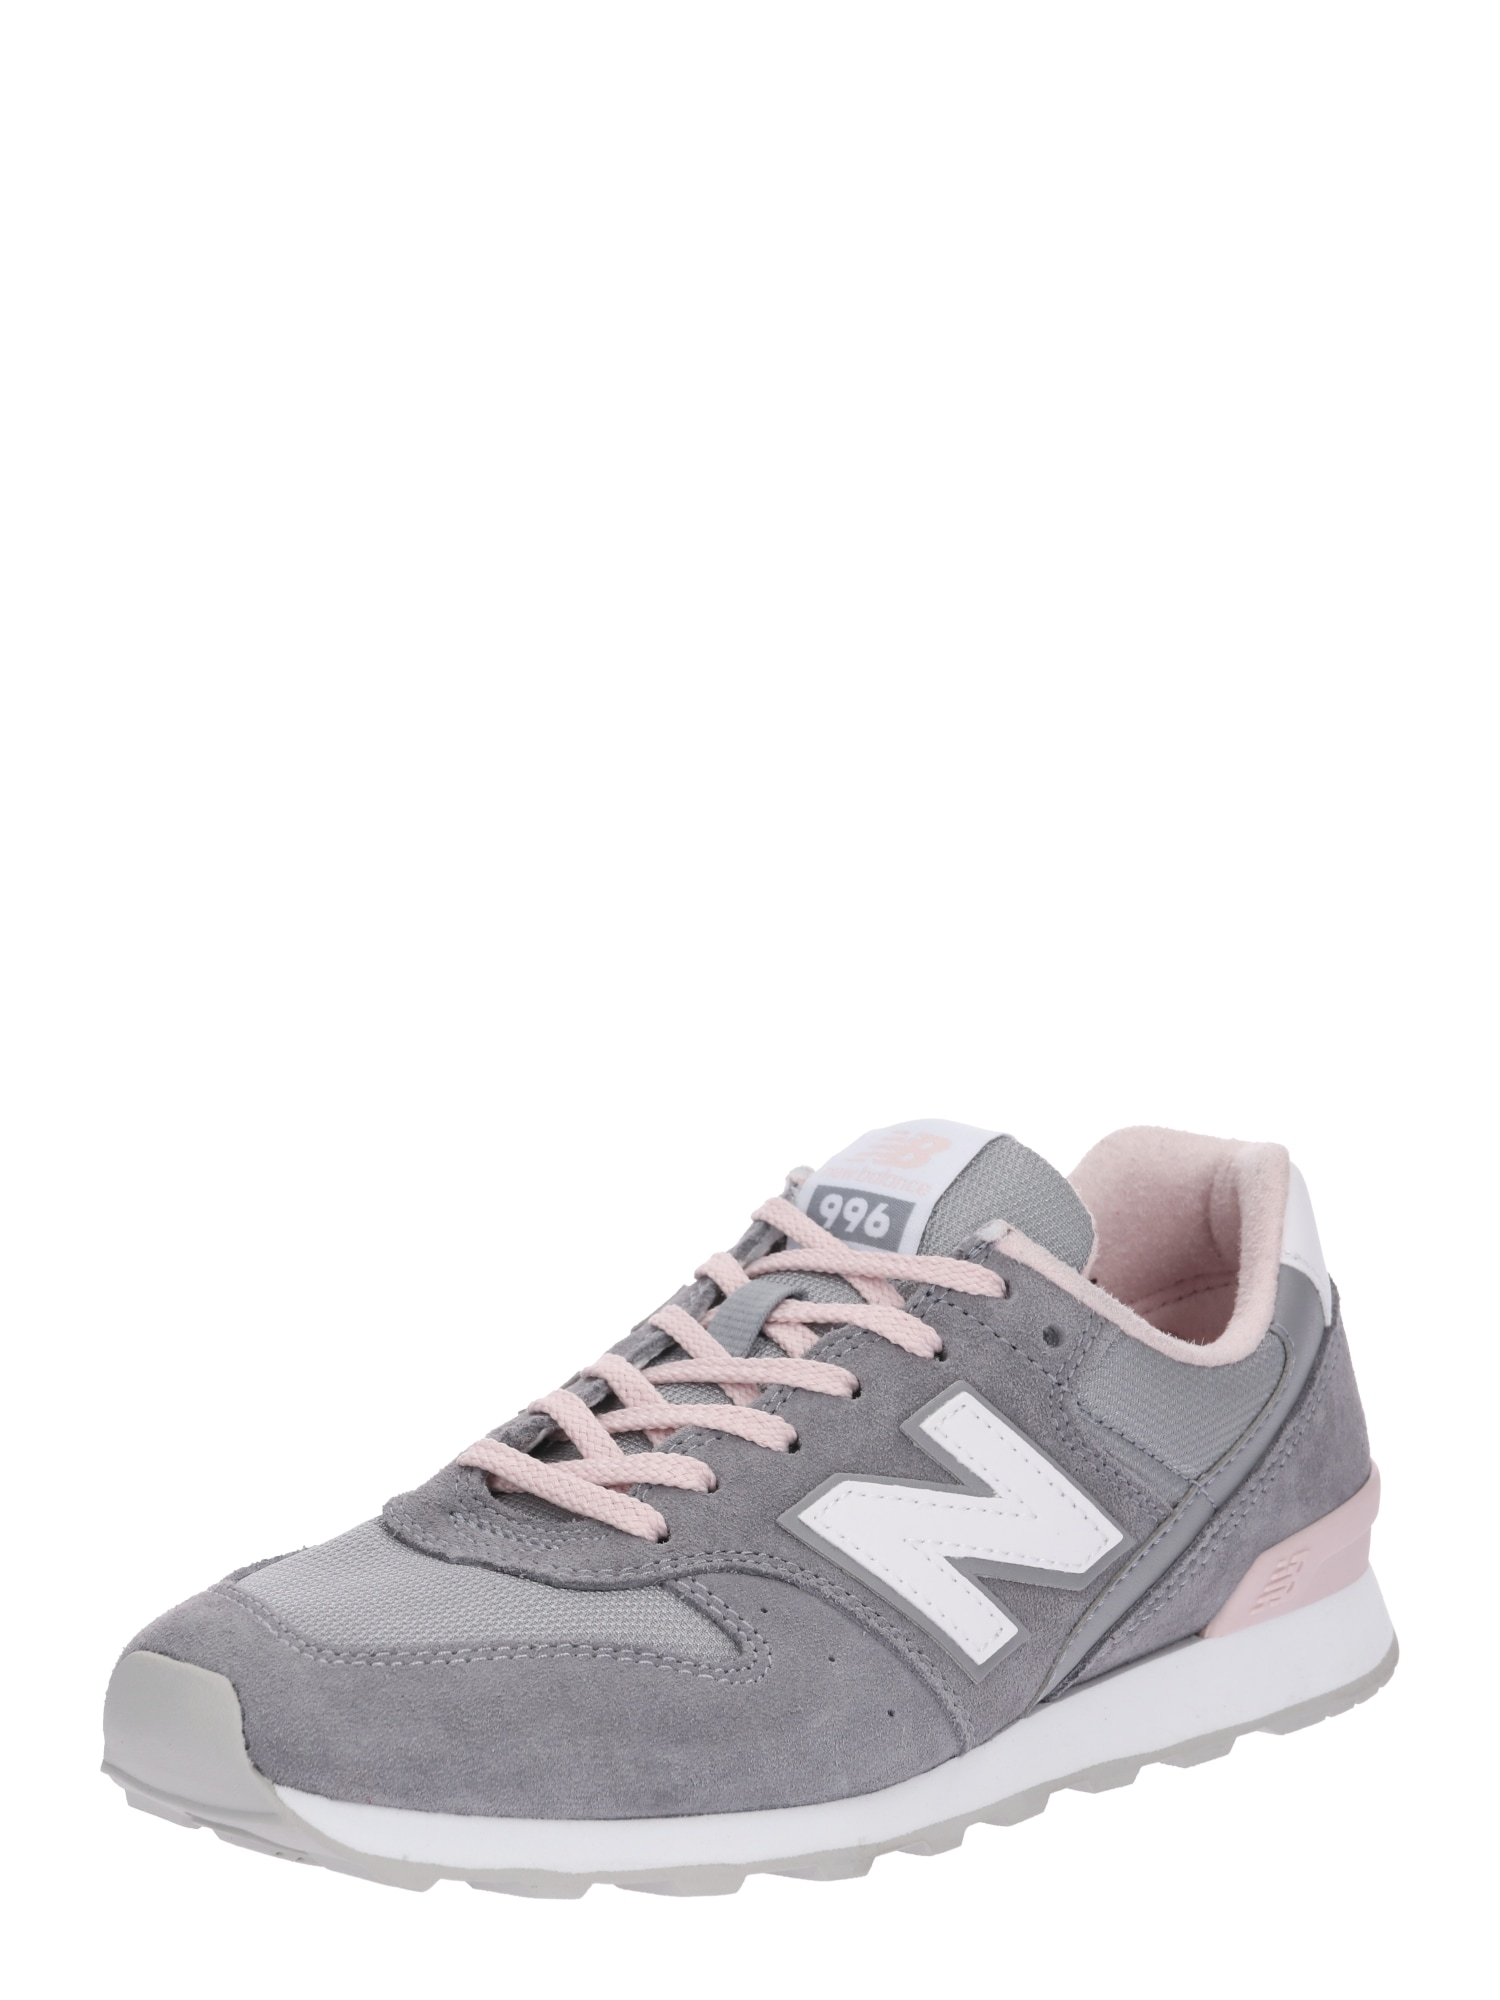 New Balance, Dames Sneakers laag 'WR996', grafiet / rosé / wit